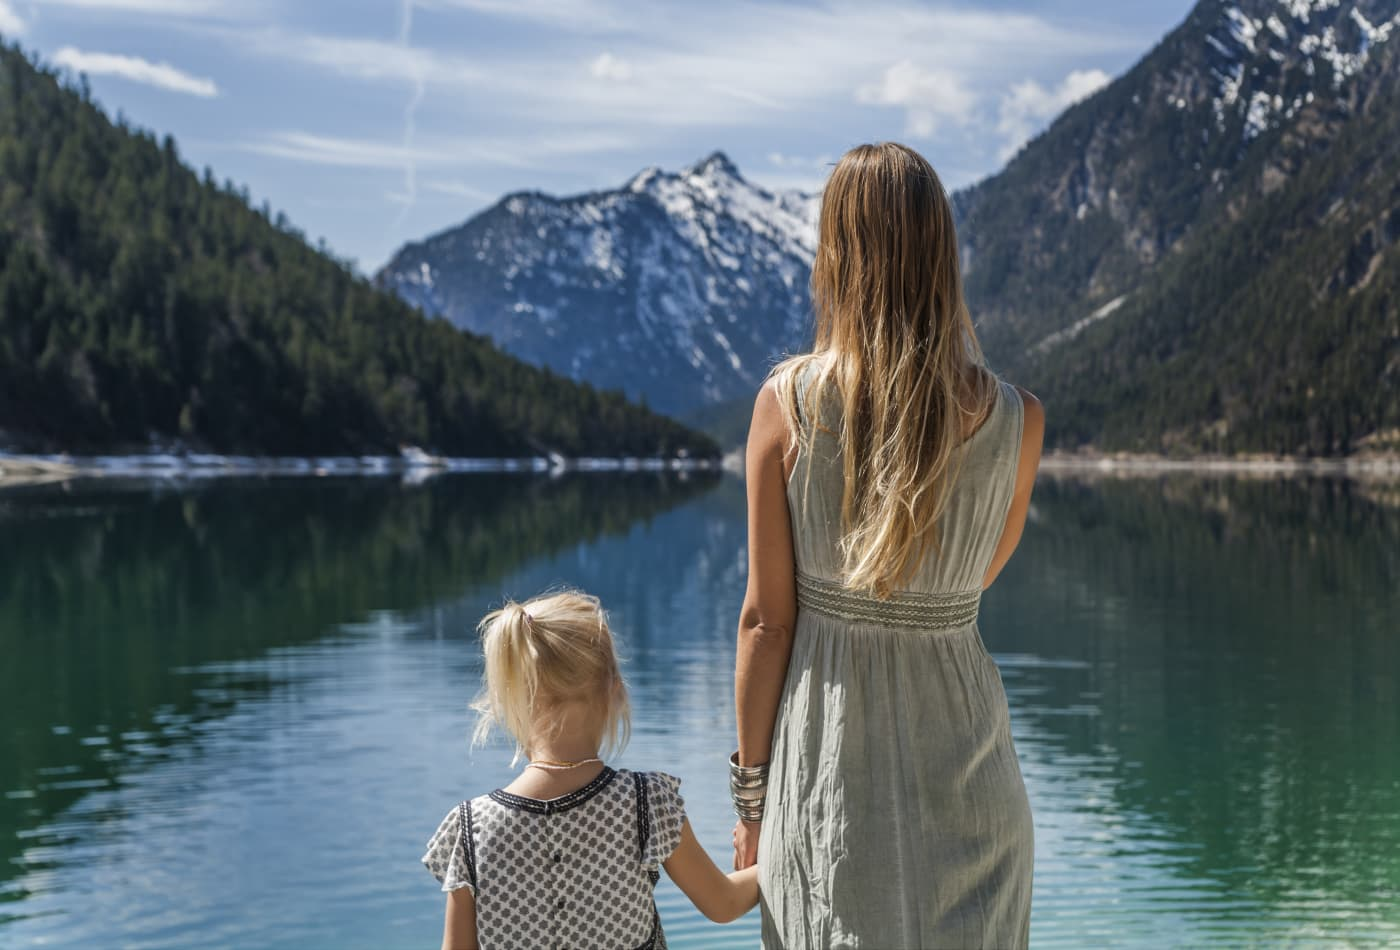 A therapist shares the 7 biggest parenting mistakes that destroy kids' mental strength